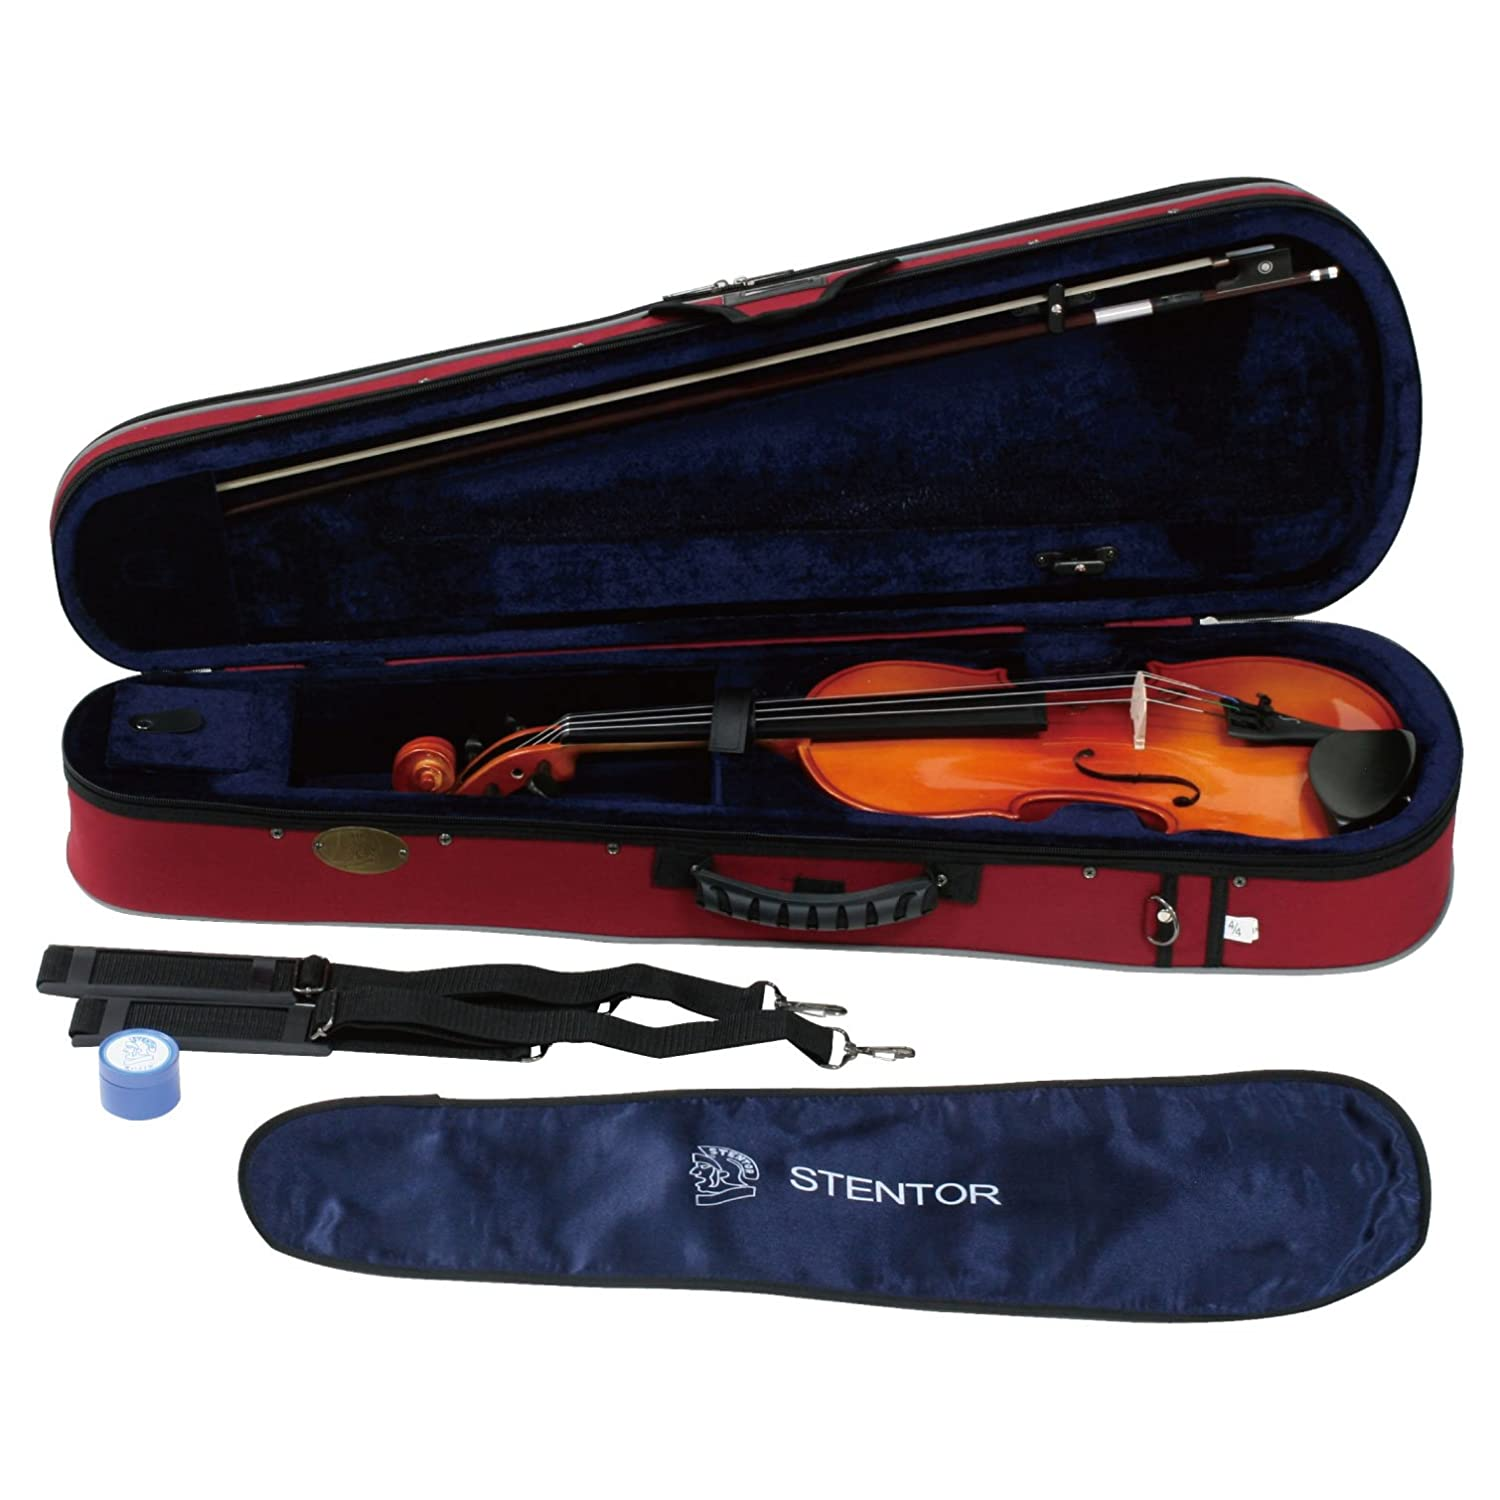 Stentor 1500 4/4 Violin KMC Music Inc